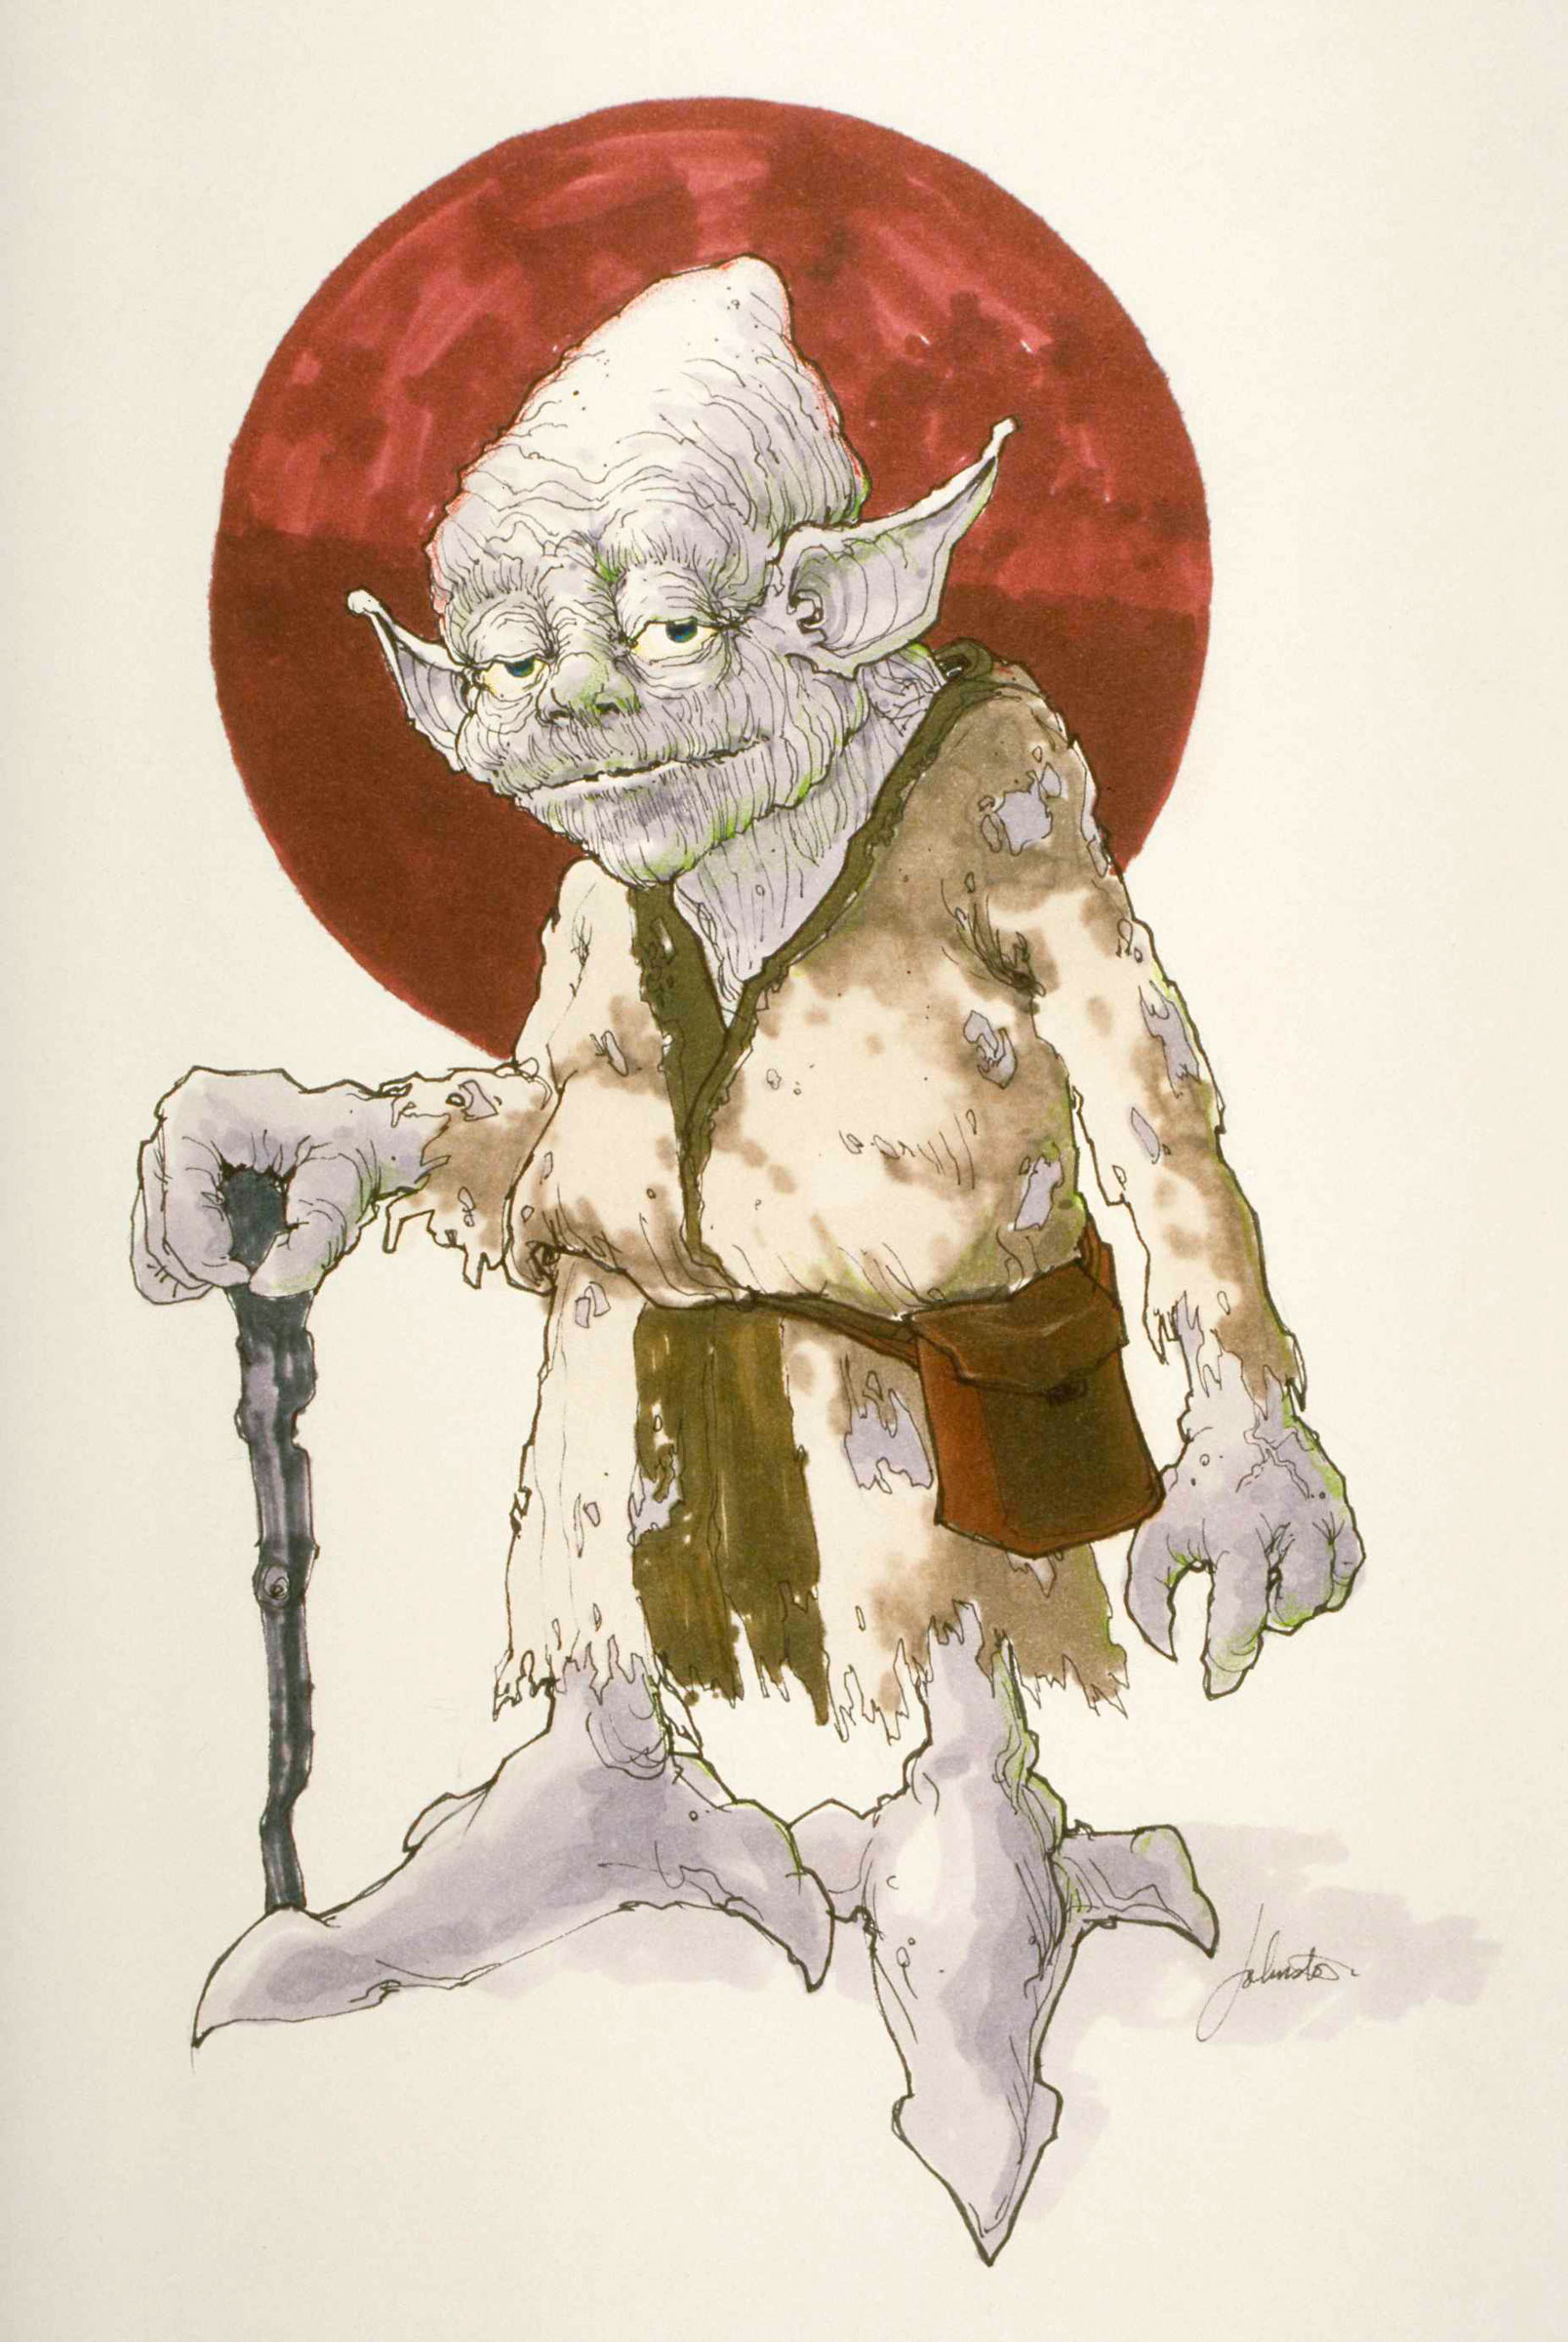 Star Wars: The Empire Strikes Back - Yoda